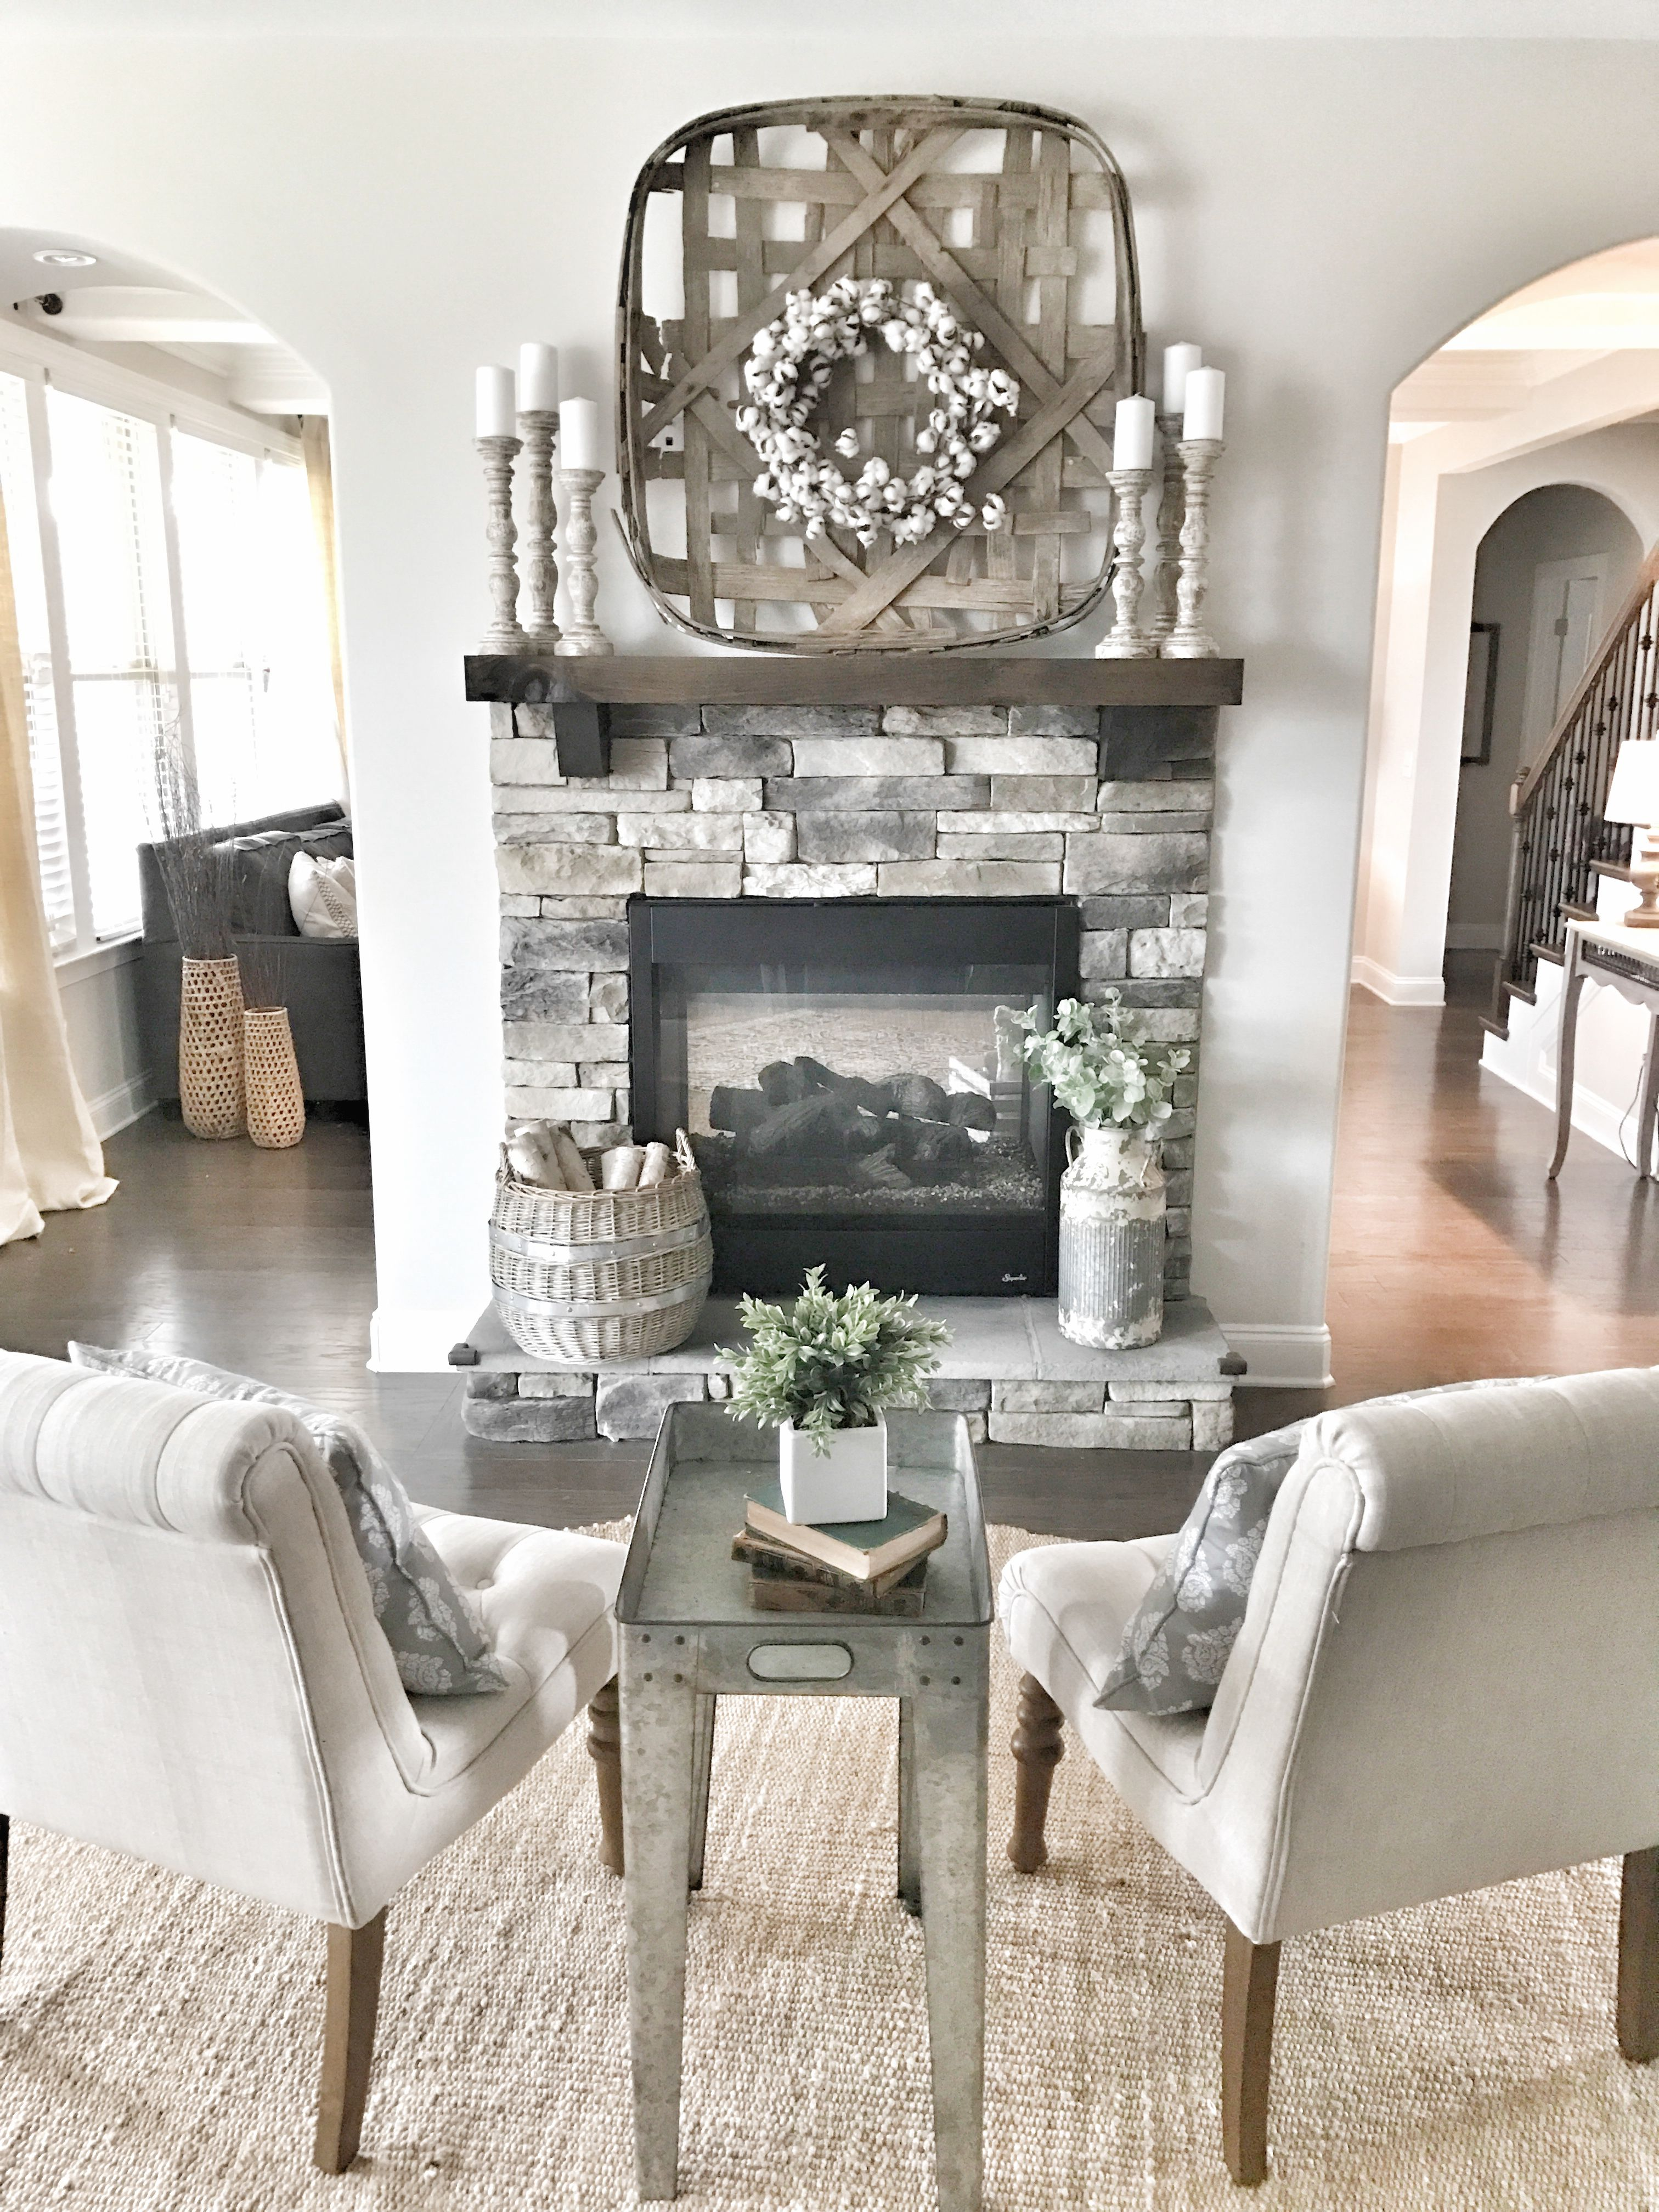 Joanna Gaines Farmhouse Mantel Fireplace Decor Farmhouse And Fixer Upper Style Ig